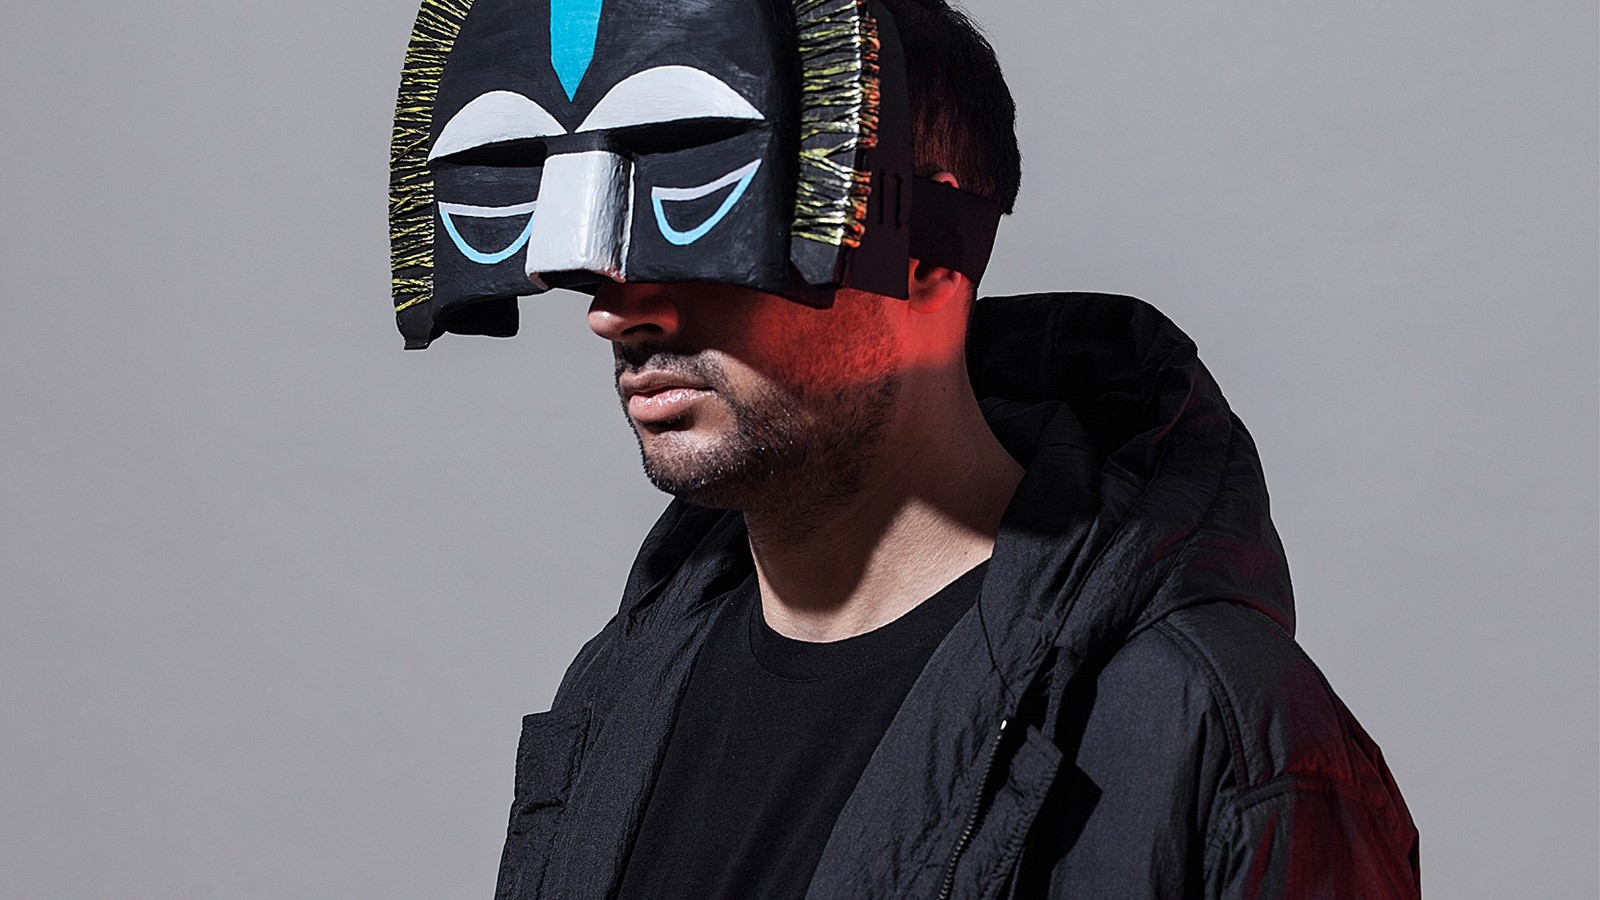 SBTRKT: the artist behind the mask